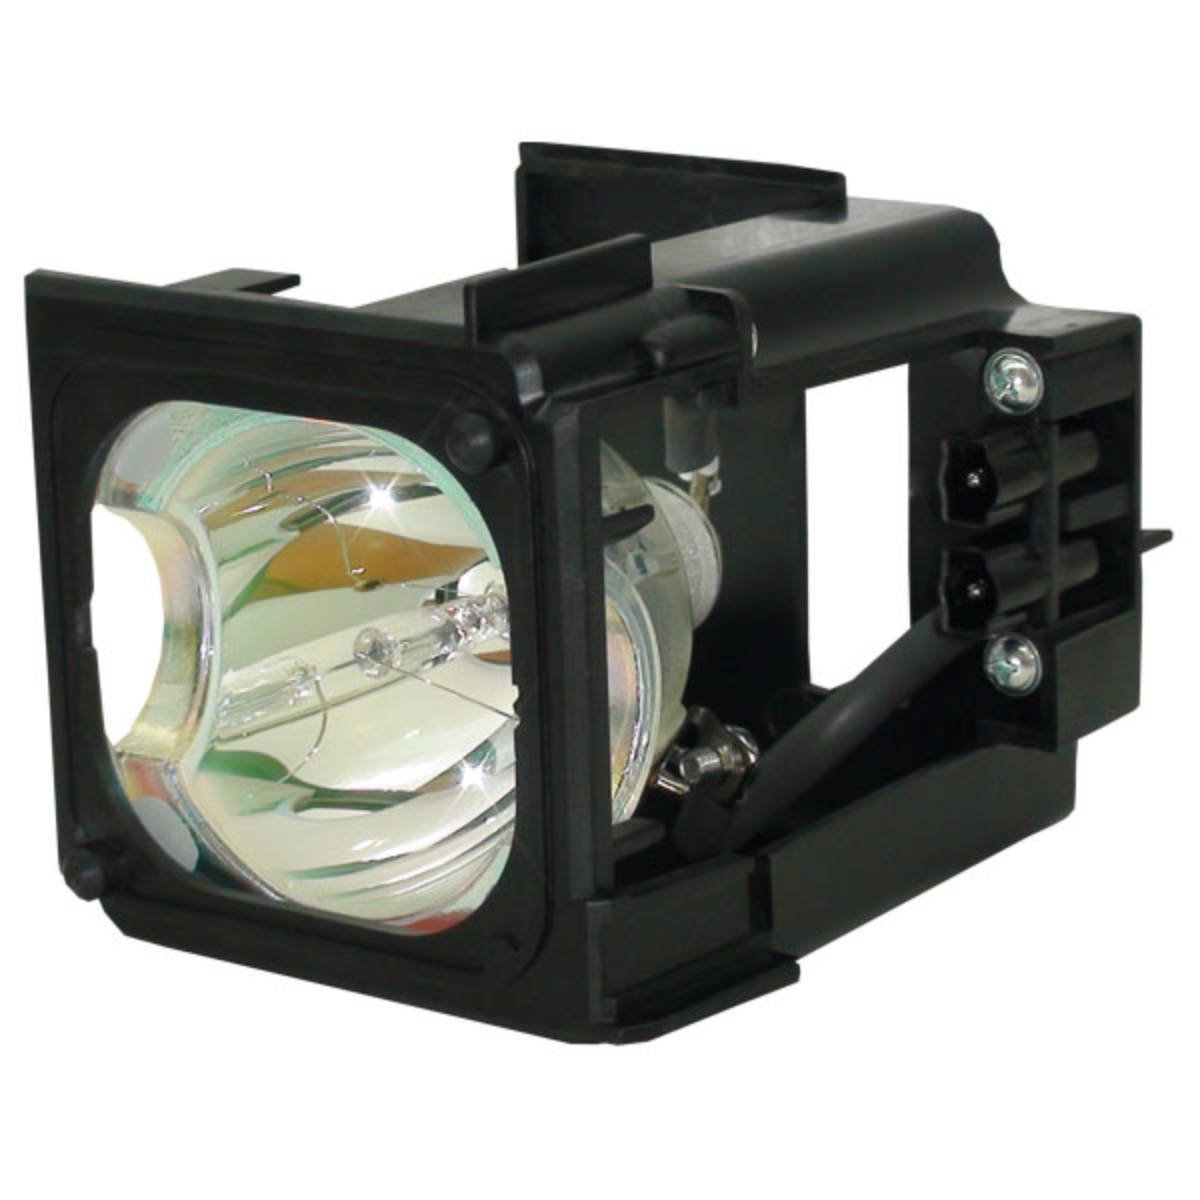 RPTV Lamp (For Samsung DLP TVs; Replaces BP96-01795A) - PREMIUM POWER PRODUCTS